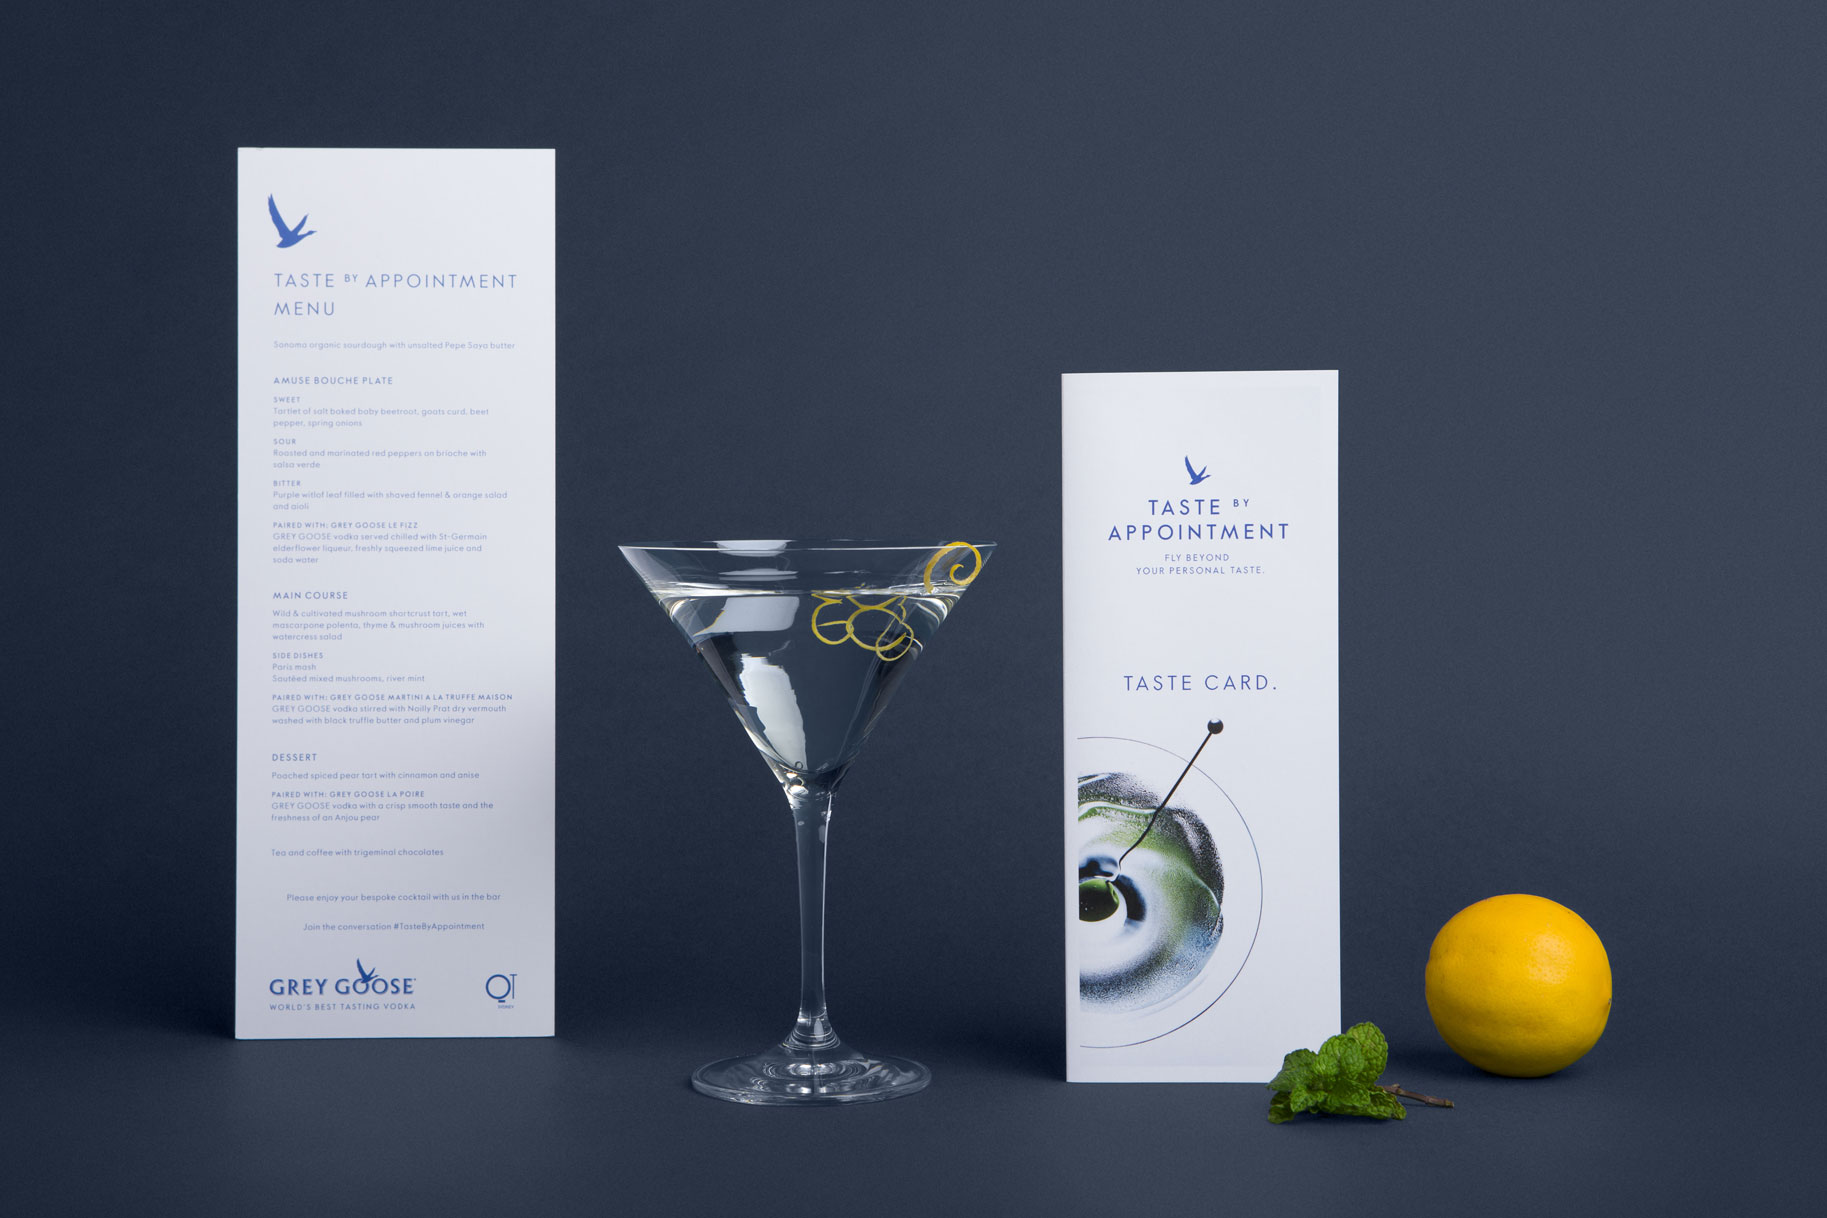 Grey Goose Taste by Appointment event